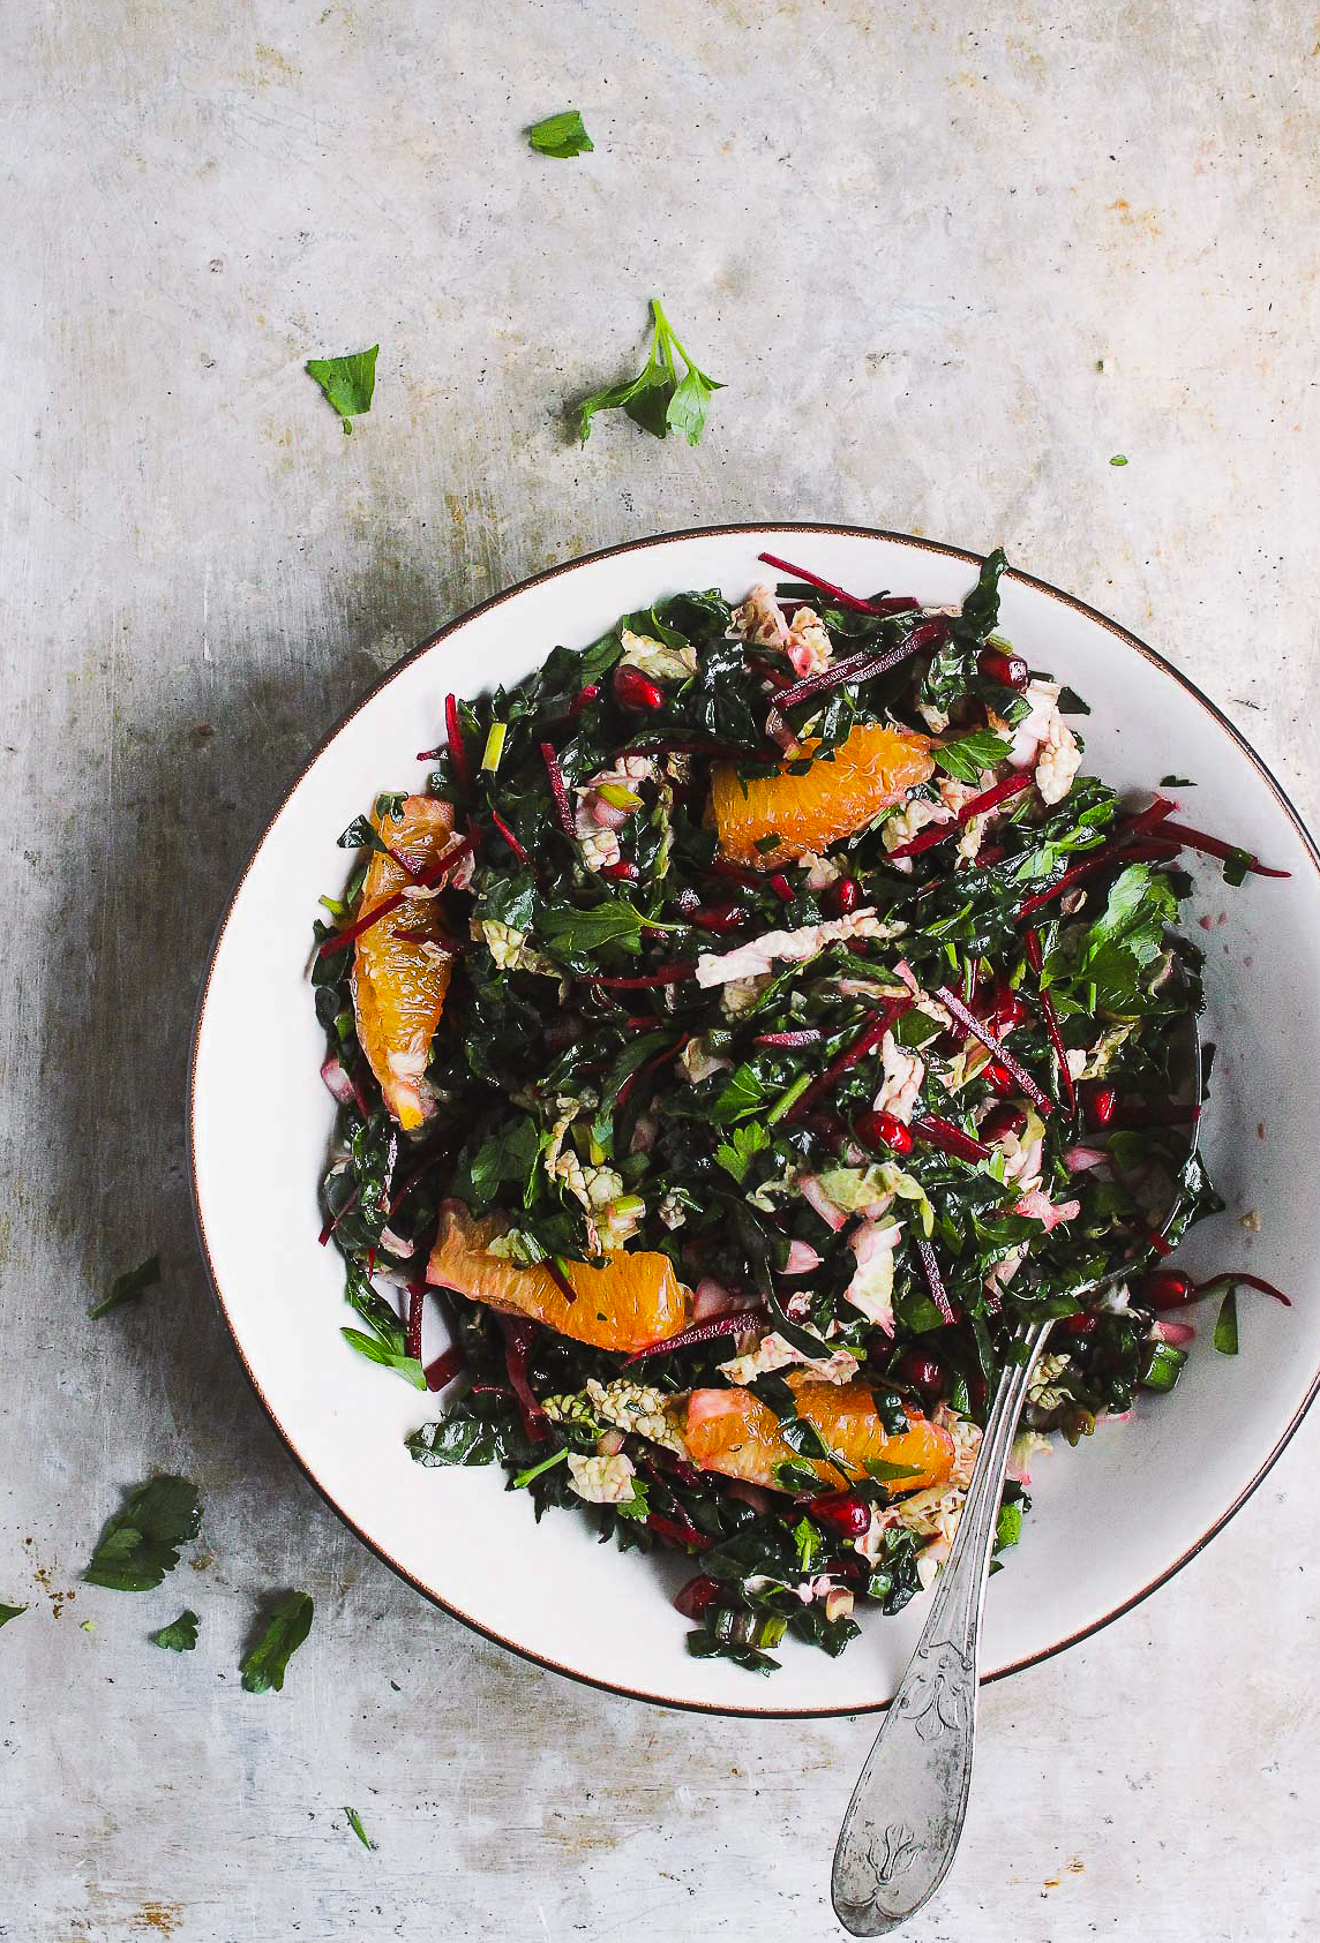 Winter Chopped Kale Salad with Citrus Vinaigrette | Winter chopped kale salad packed with pomegranates and oranges and a zesty citrusy vinaigrette. A hearty, naturally vegan and gluten-free winter kale salad.